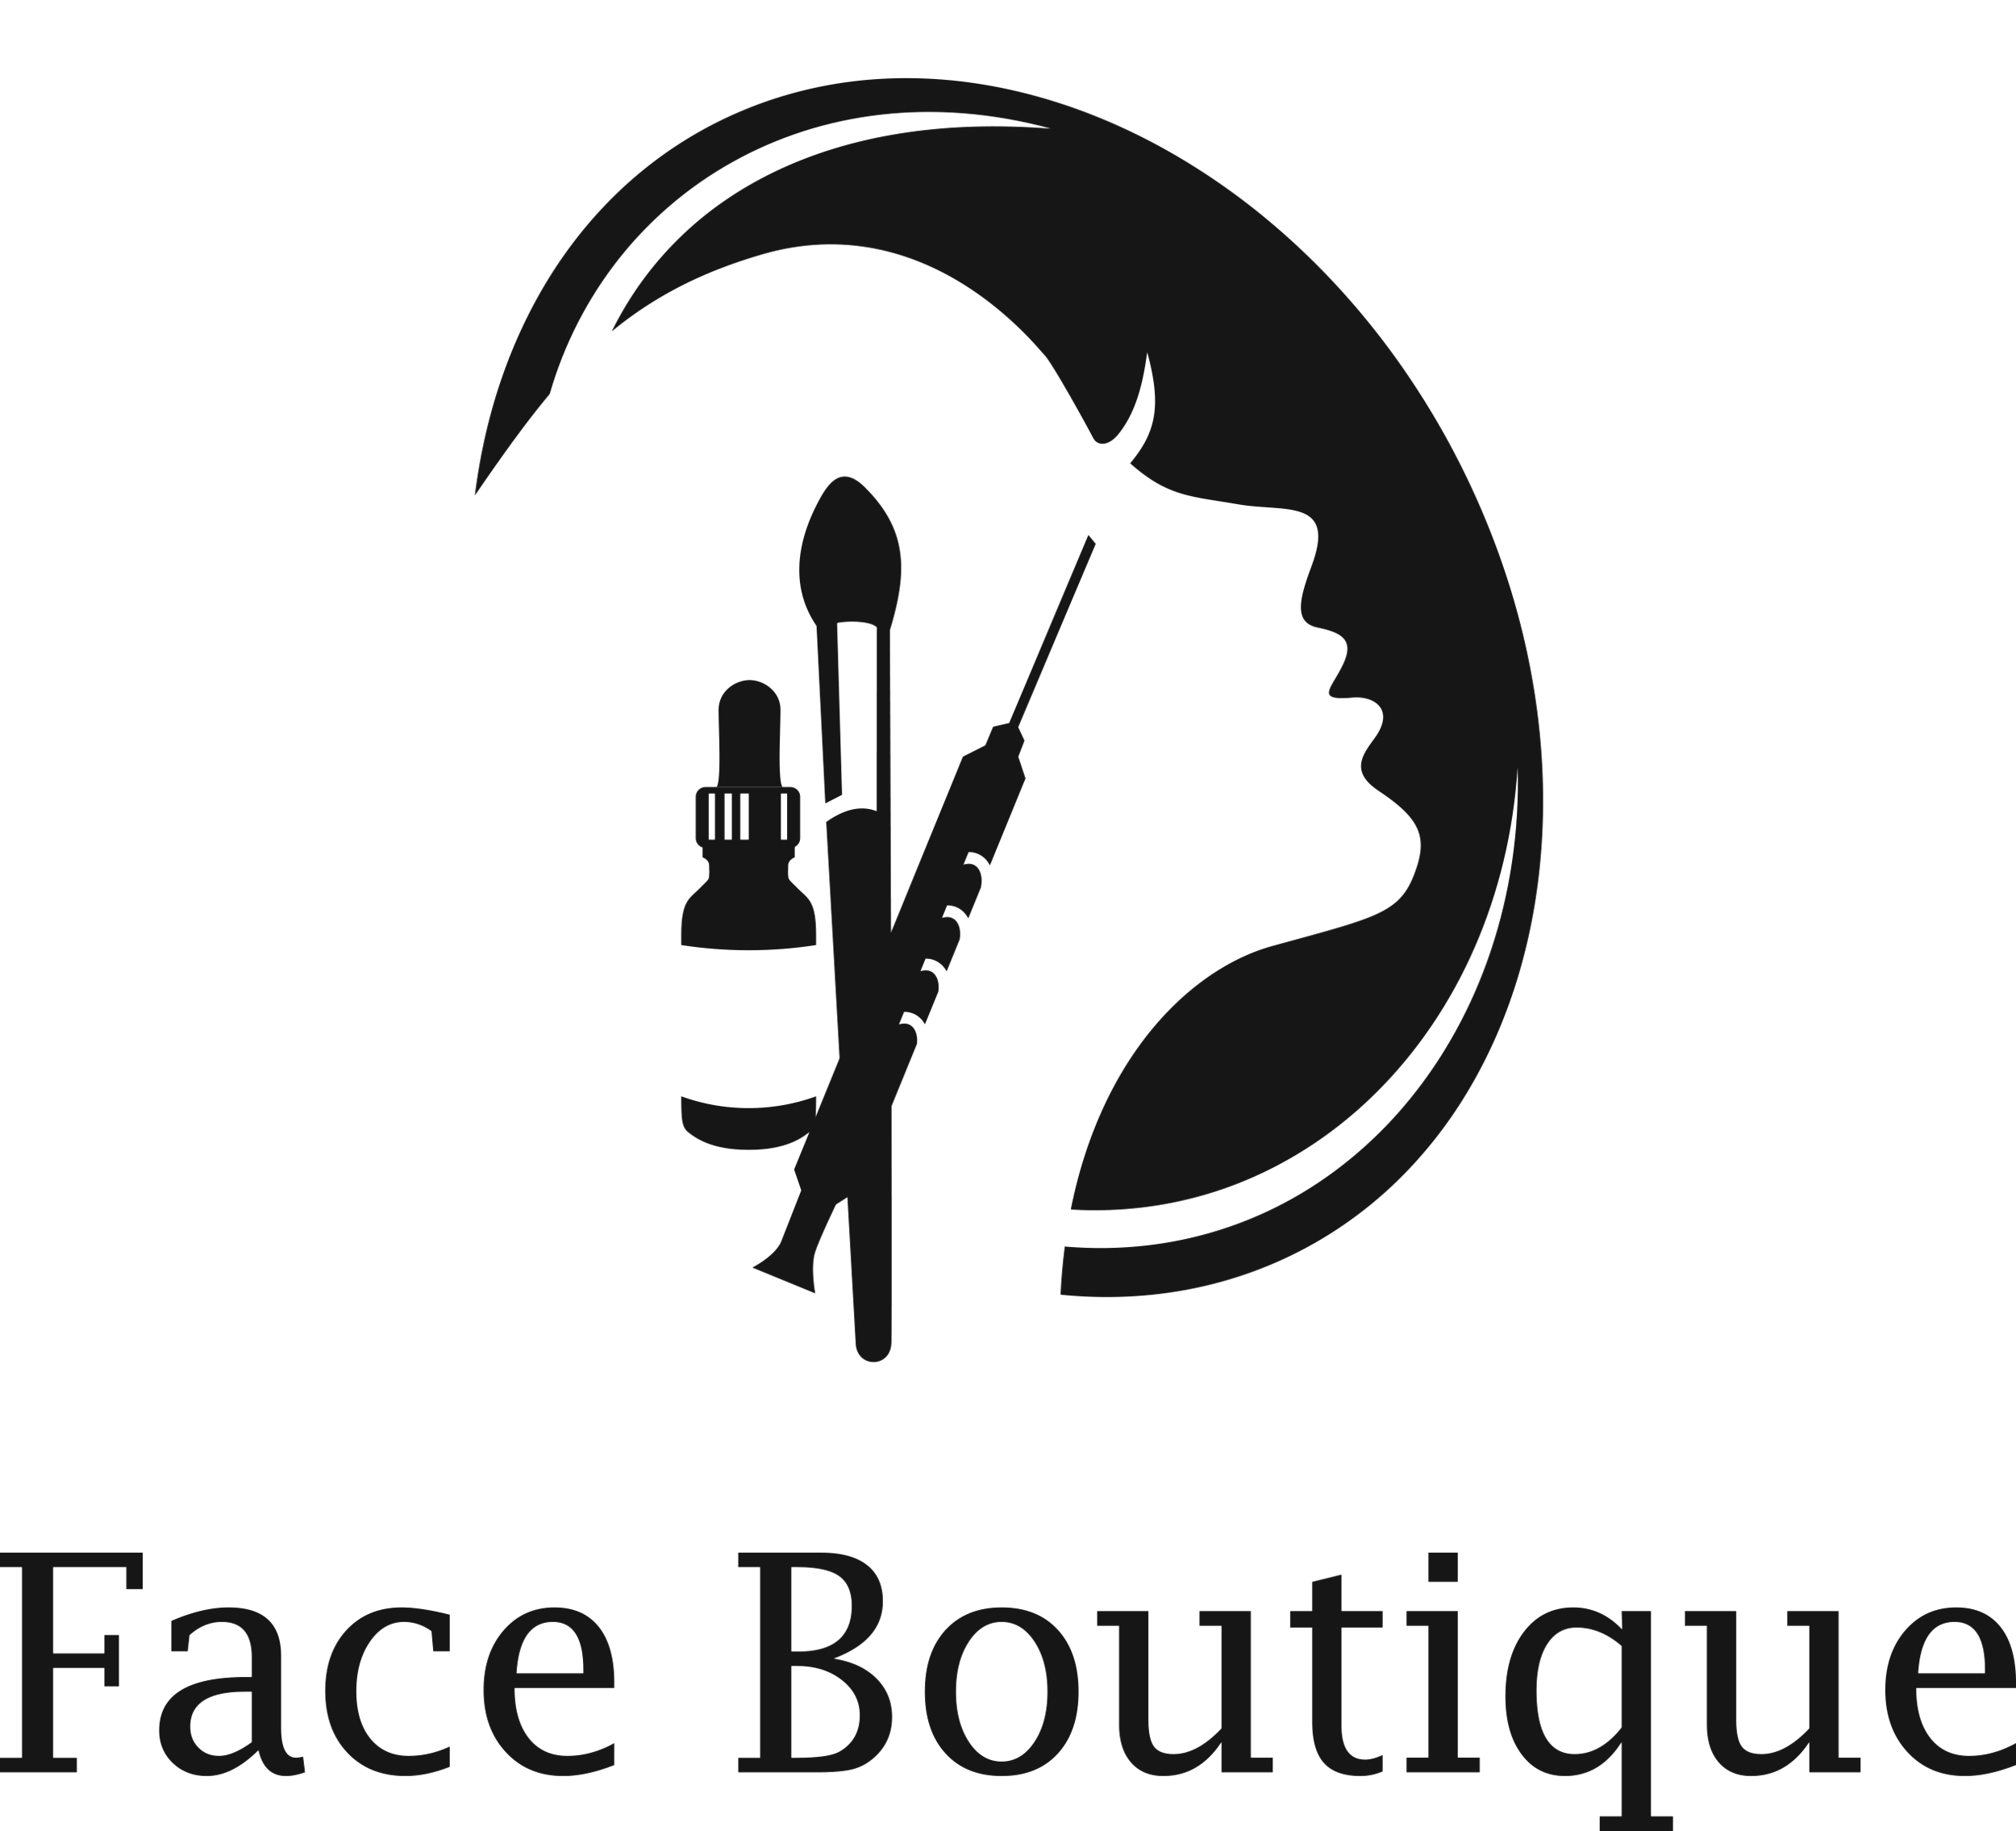 Face Boutique B&W.png